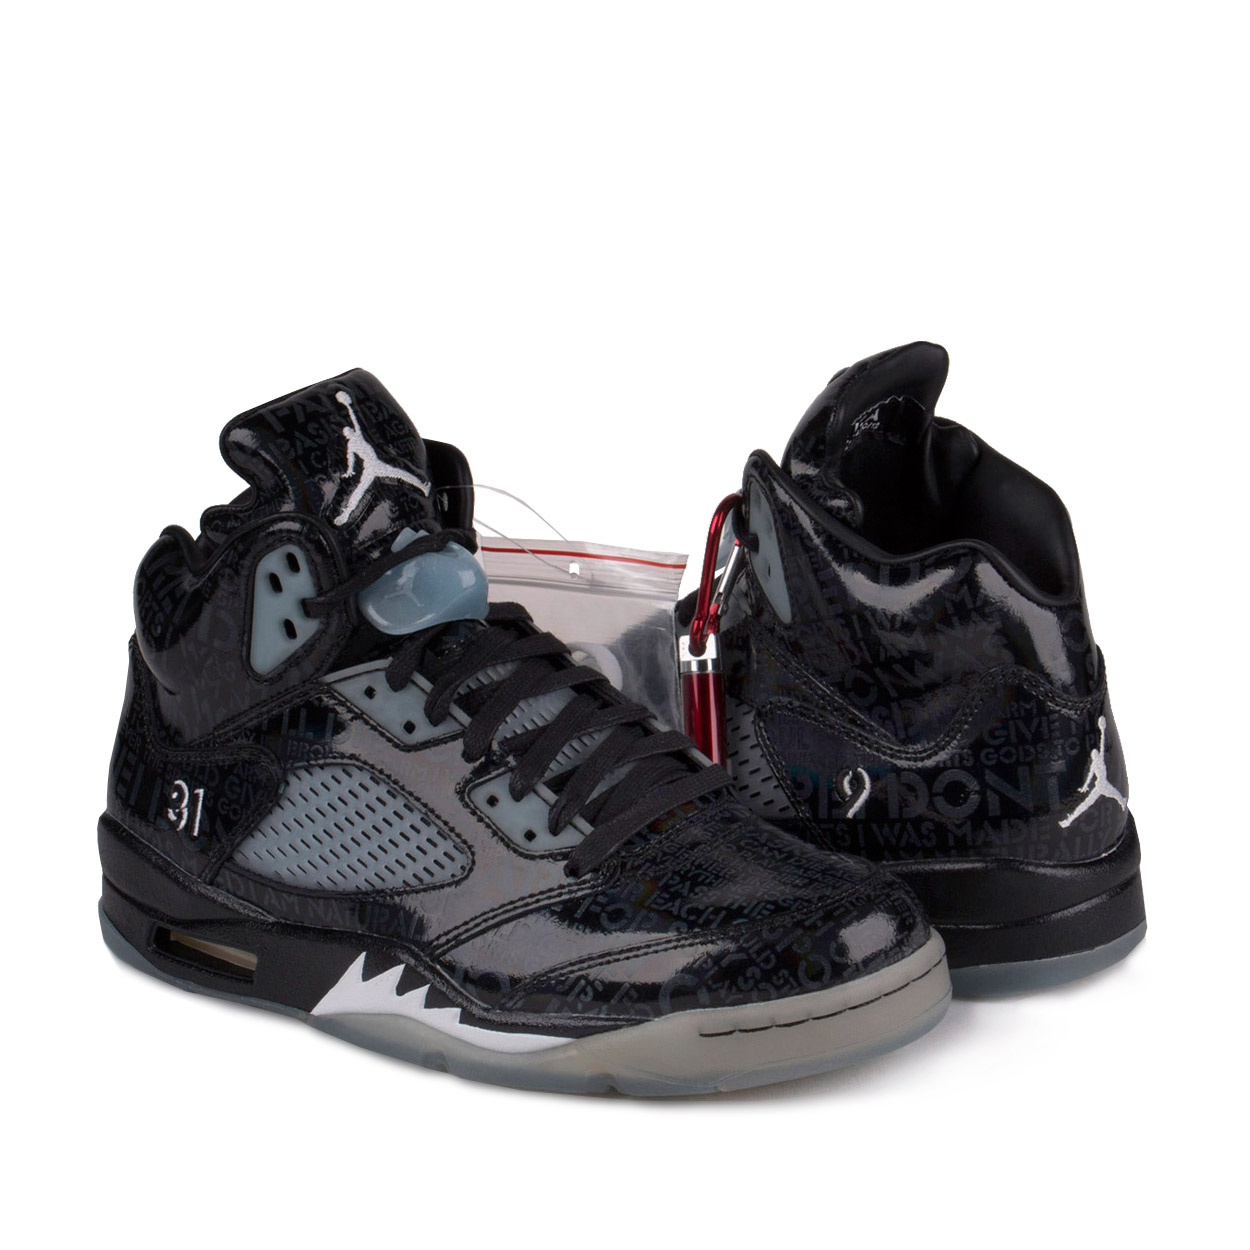 "Nike Mens Air Jordan 5 Retro DB ""Doernbecher"" Black/White..."